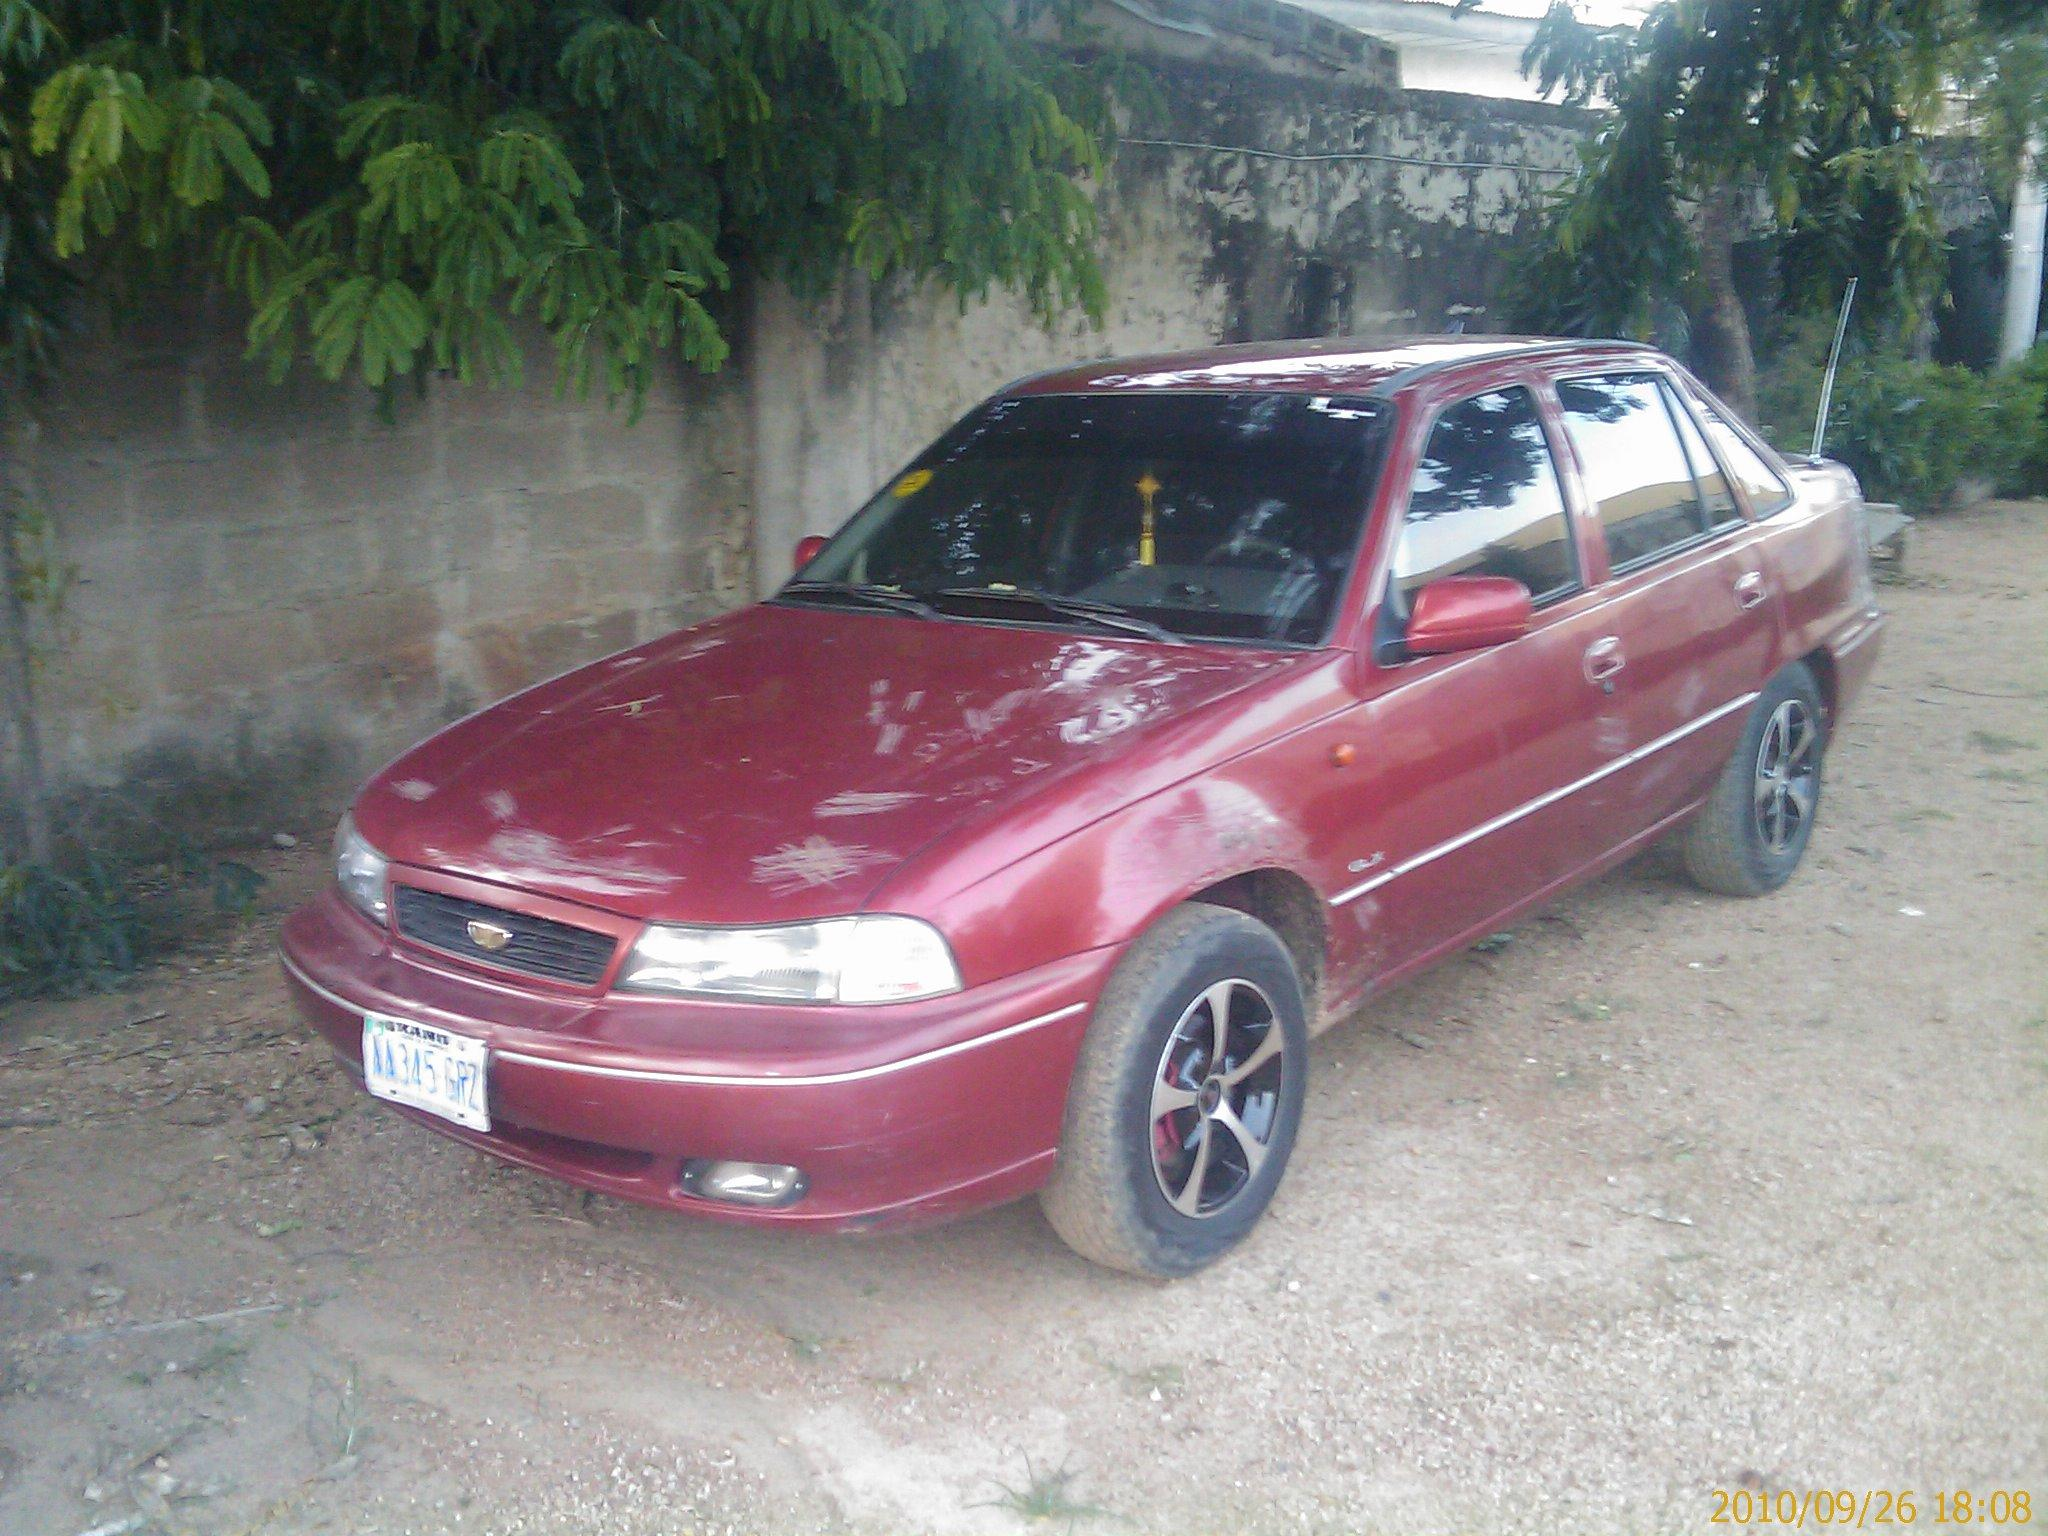 ee 1997 Daewoo Cielo Specs, Photos, Modification Info at CarDomain